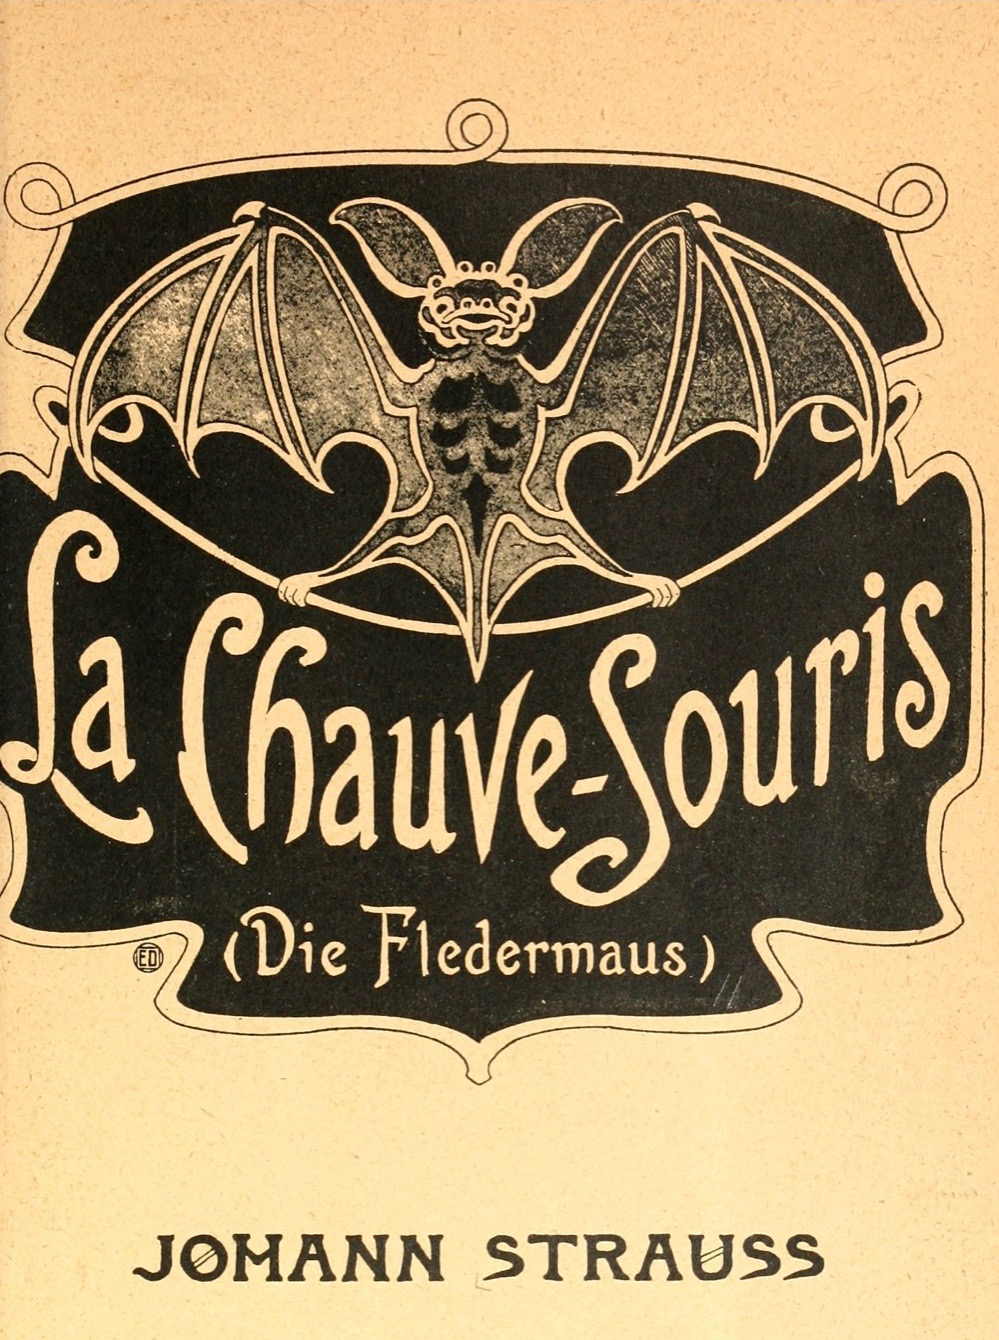 Title page of the opera Die Fledermaus. Artistic illustration of a bat with text La Chave Souris Die Fledermaus.